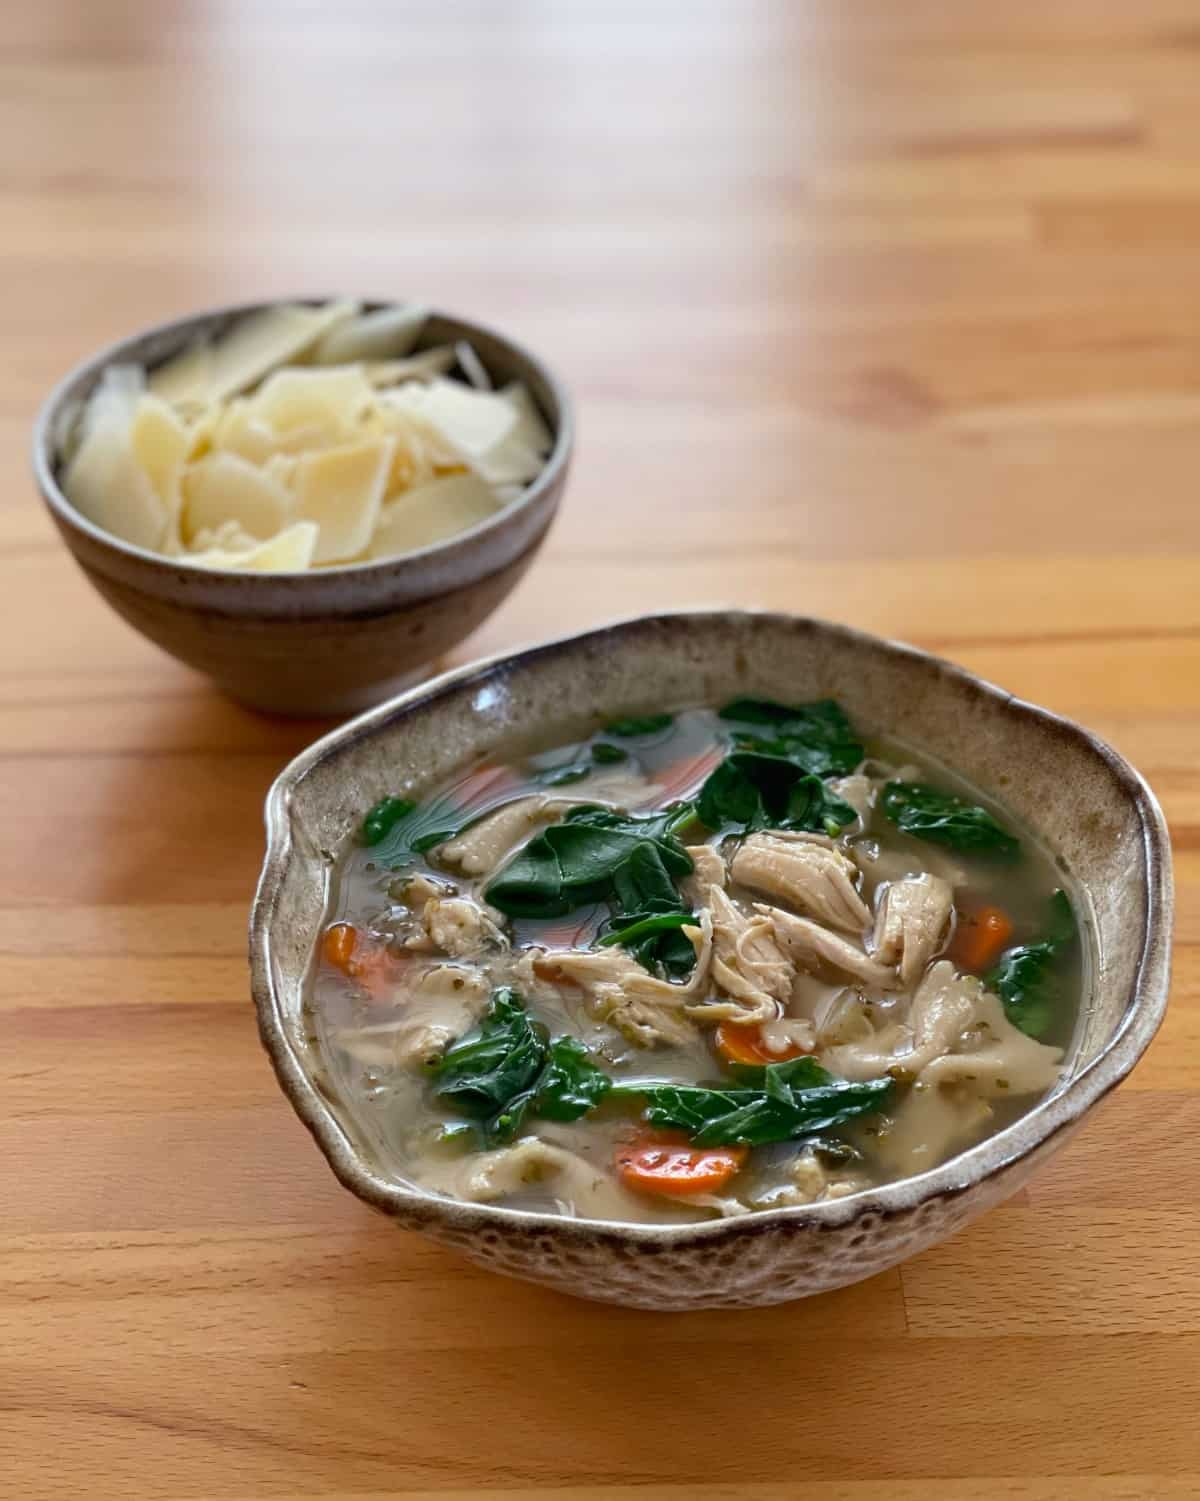 Tuscan chicken bowtie soup in ceramic bowl with small bowl shredded Parmesan cheese